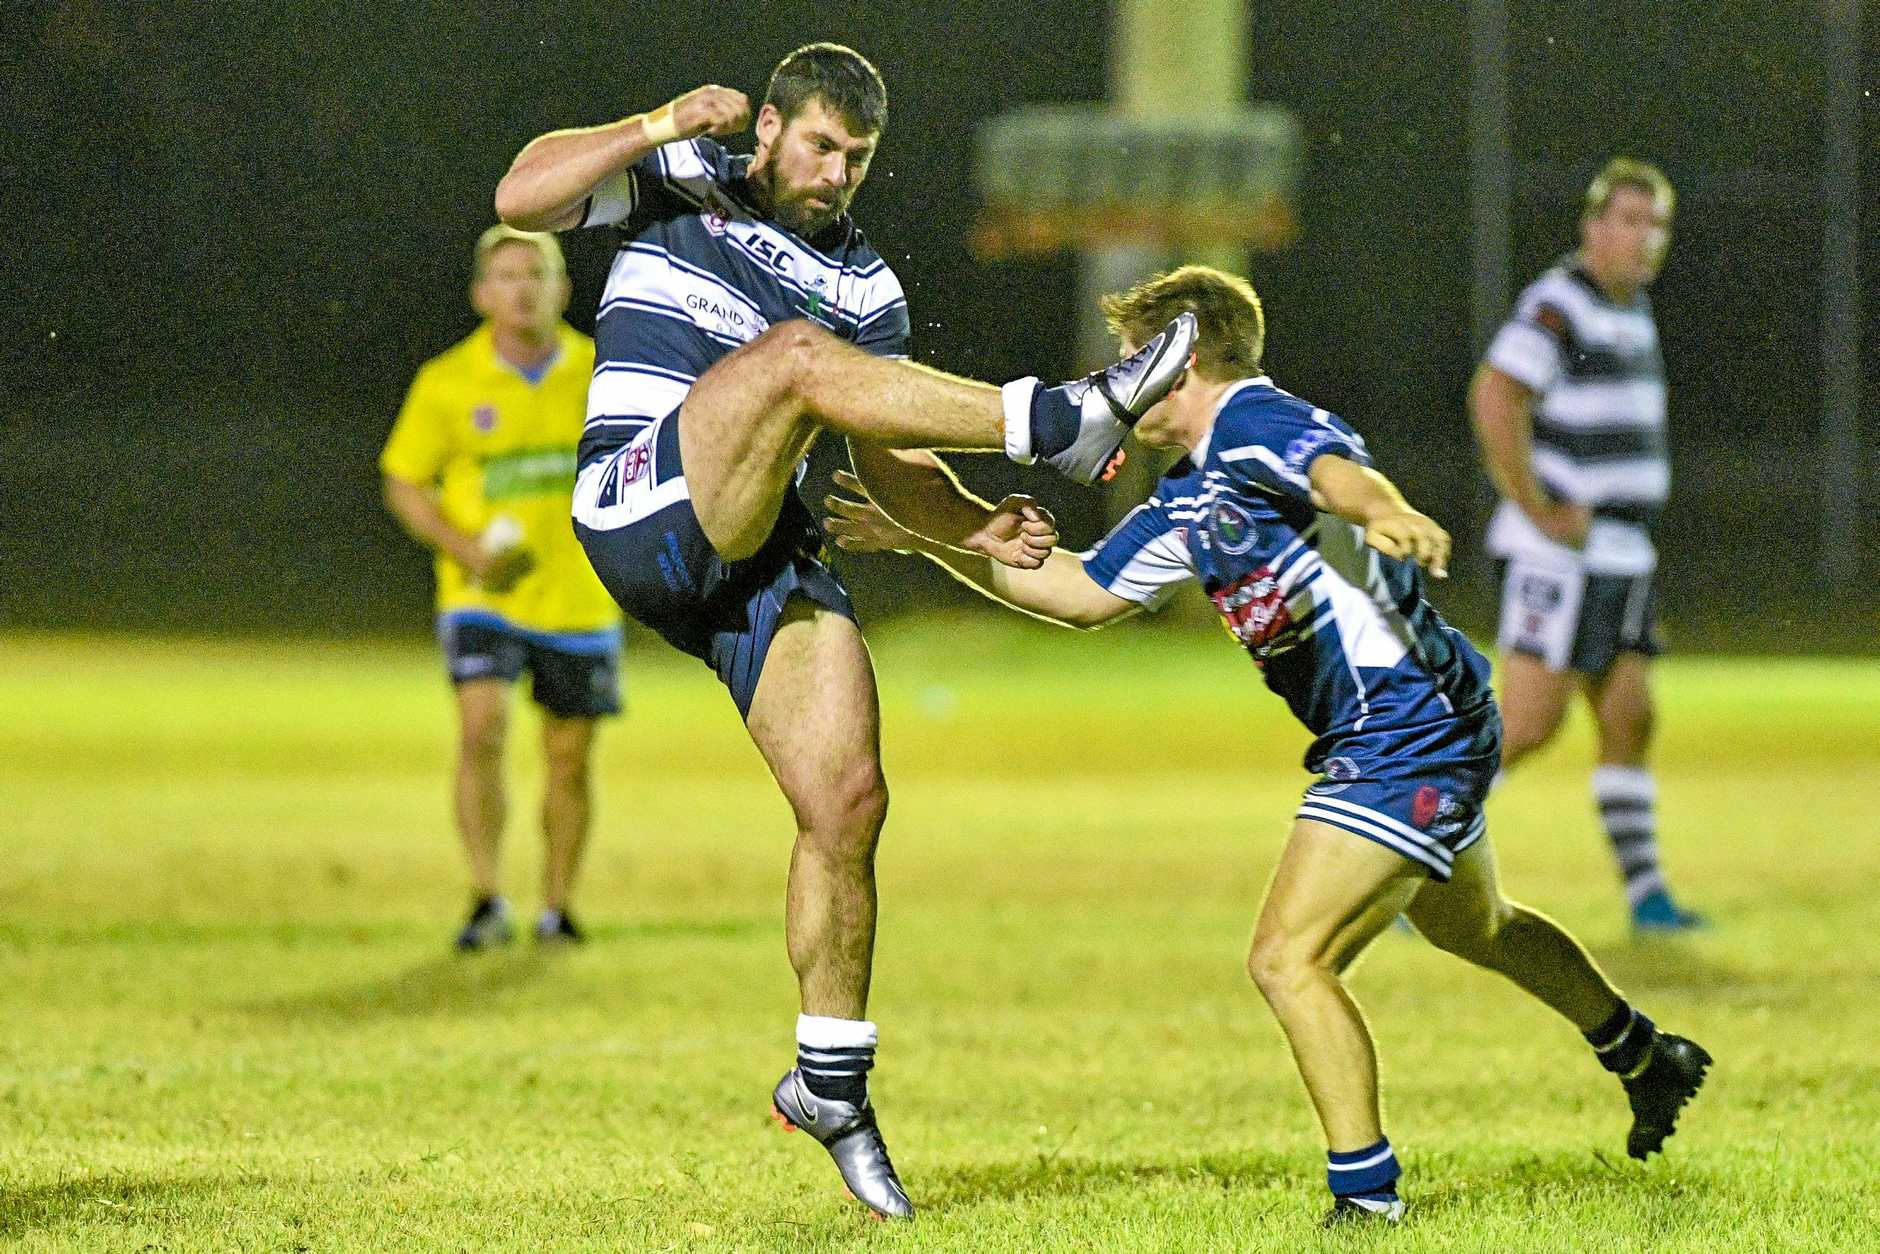 Tyrone Lockrey is tackled after kicking ball for Gladstone Brothers against Rockhampton Brothers.